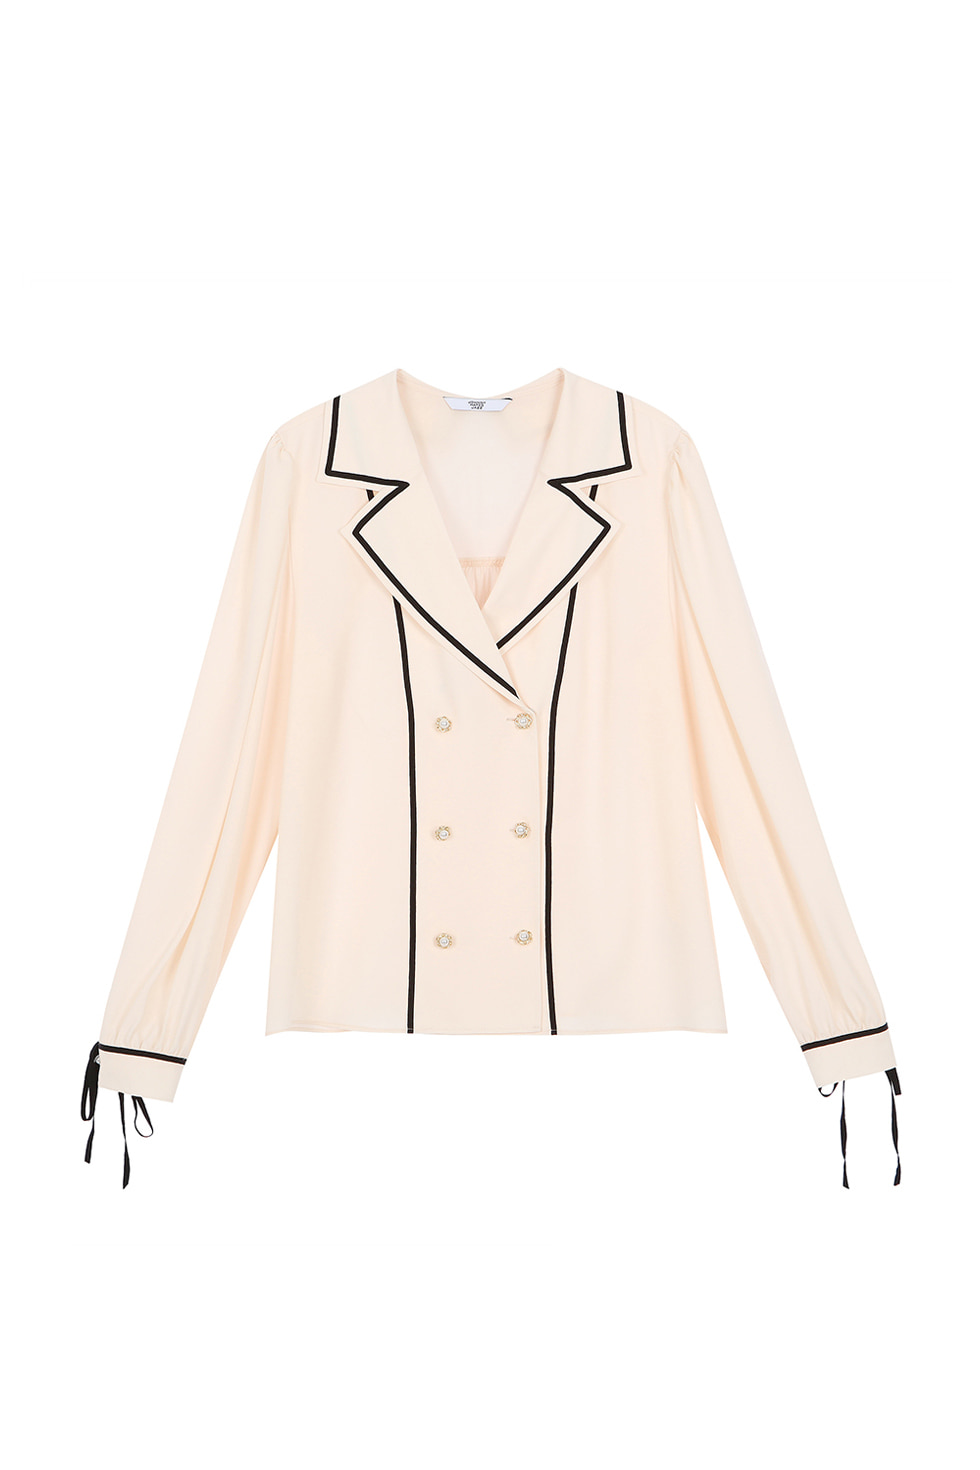 TAPE LINE COLLAR BLOUSE - IVORY